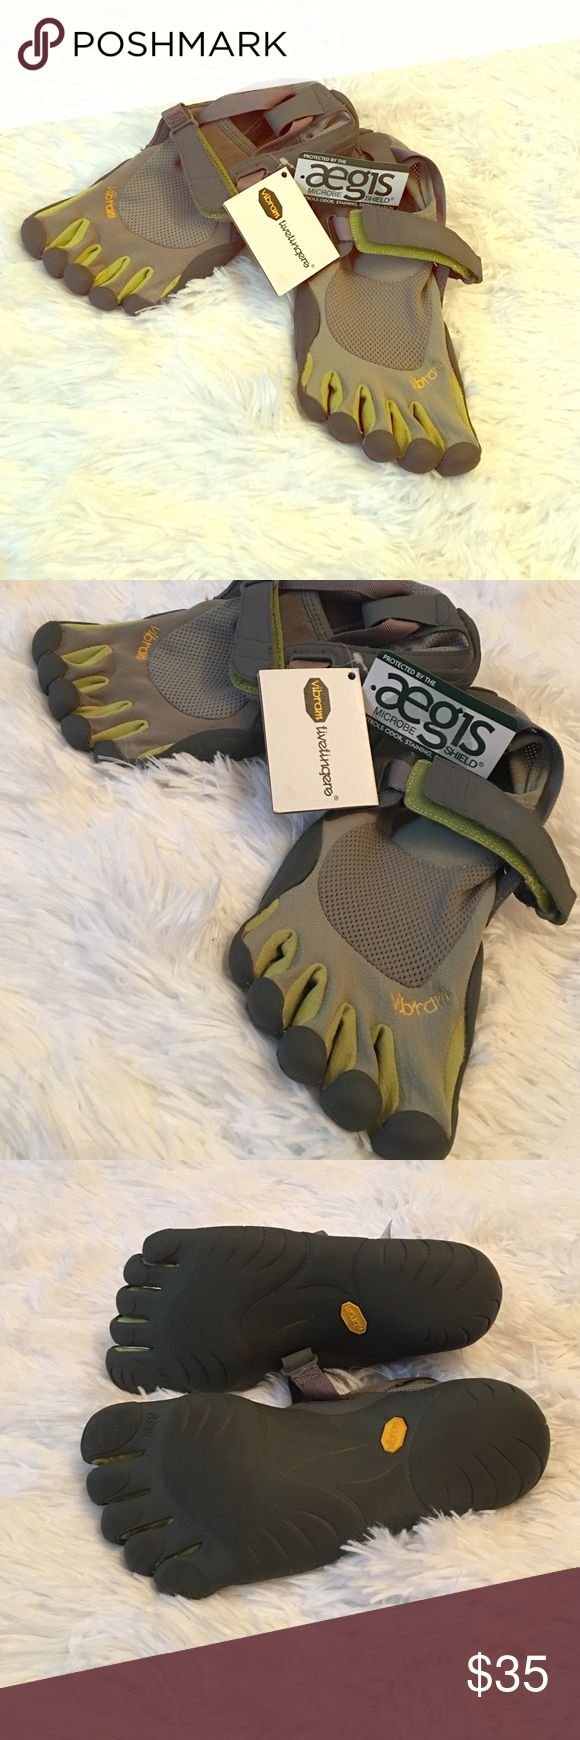 Vibram toe shoes!! NWT!! New with tag VIBRAM size M39 toe shoes! Gray with green! Bundle with other items for instant discounts Patagonia Shoes